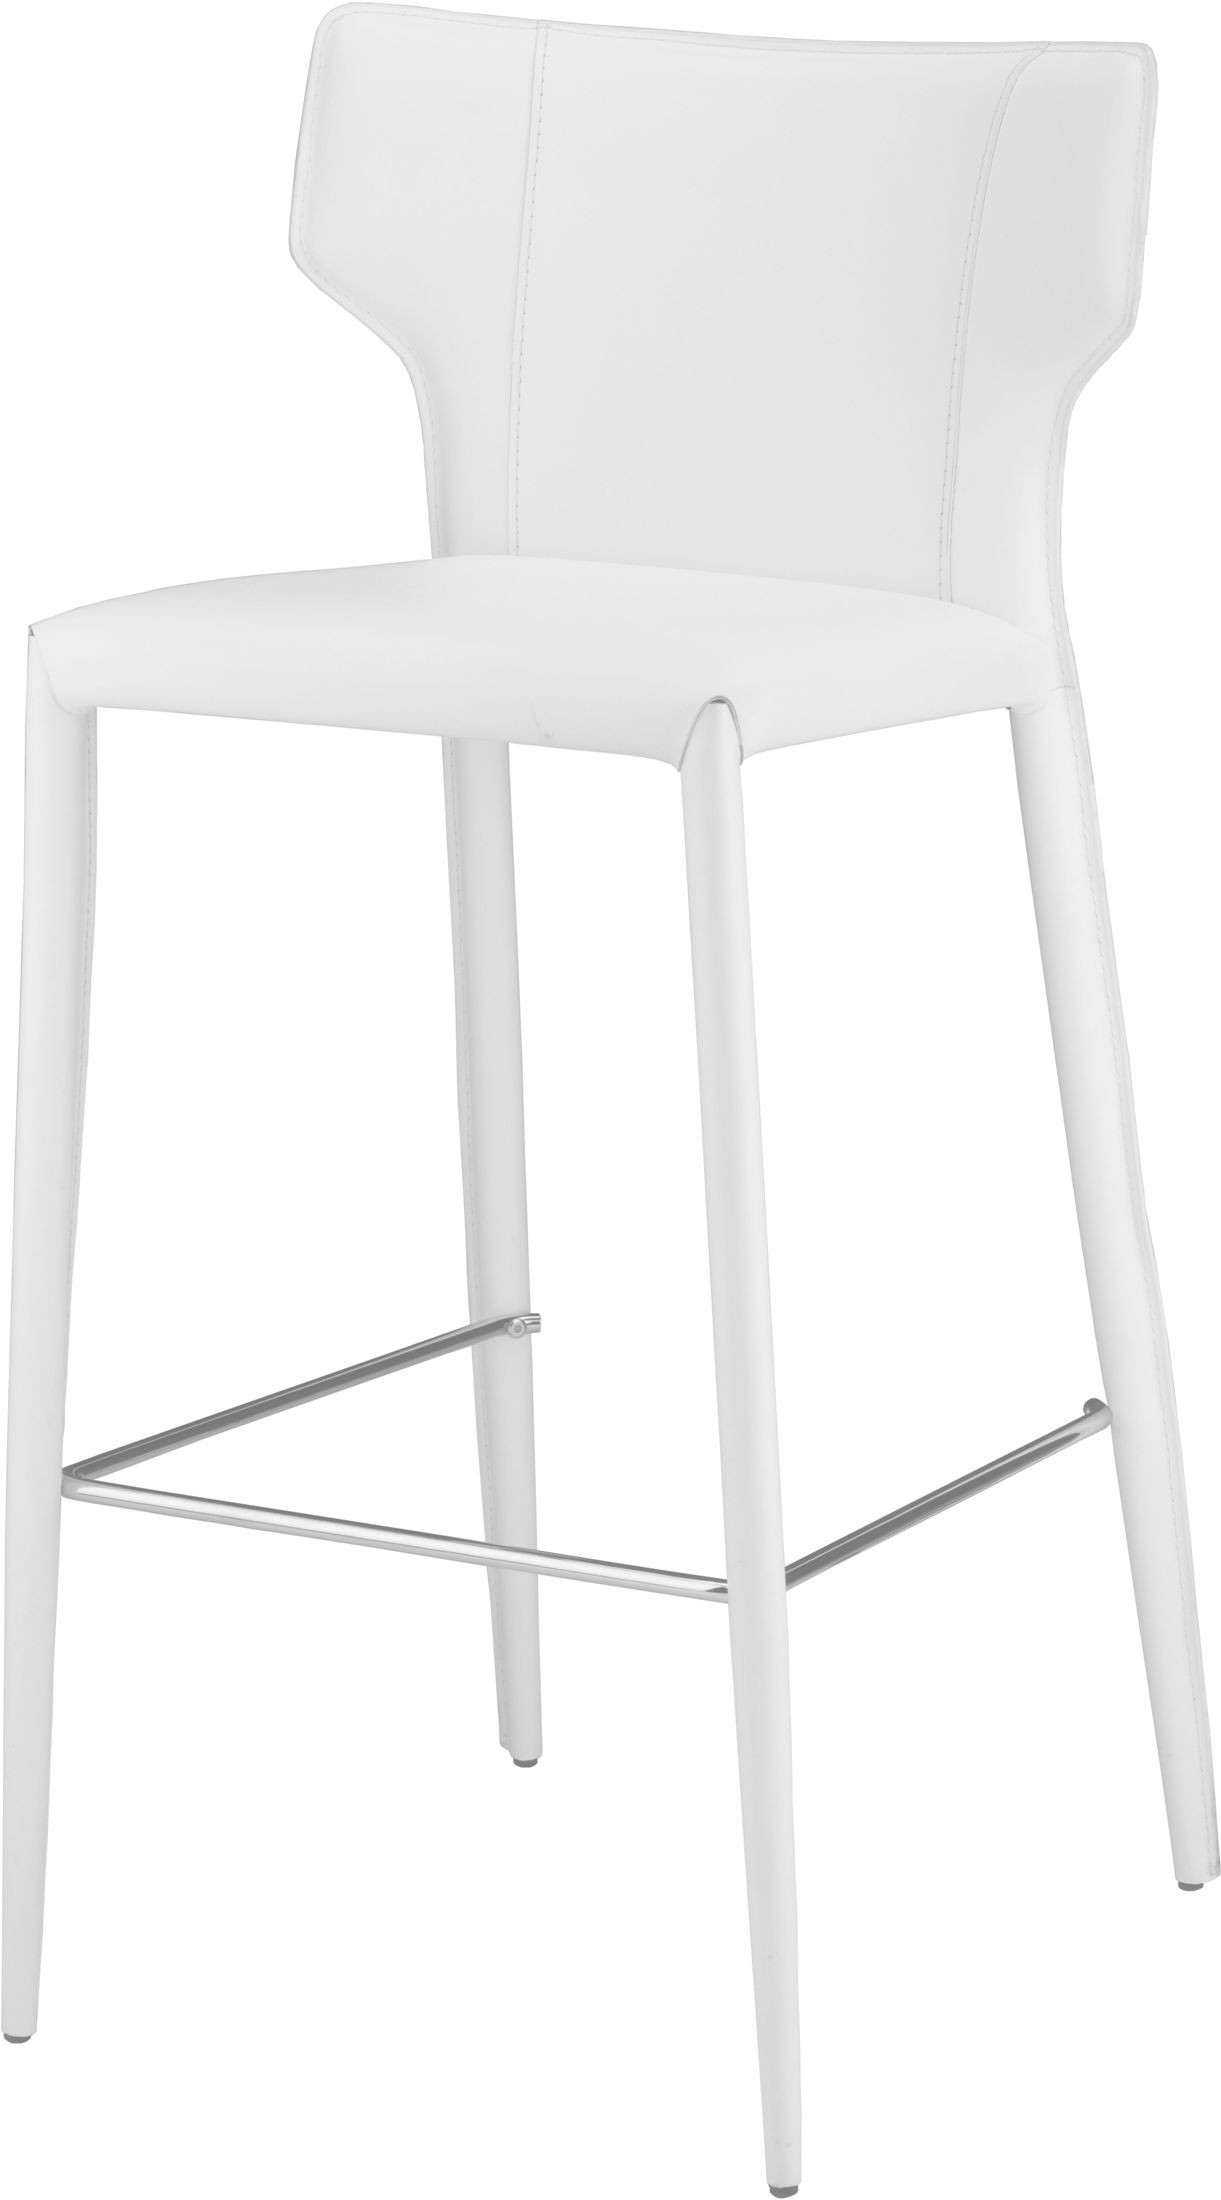 Wayne White Counter Stool Set Of 2 From Nuevo Coleman